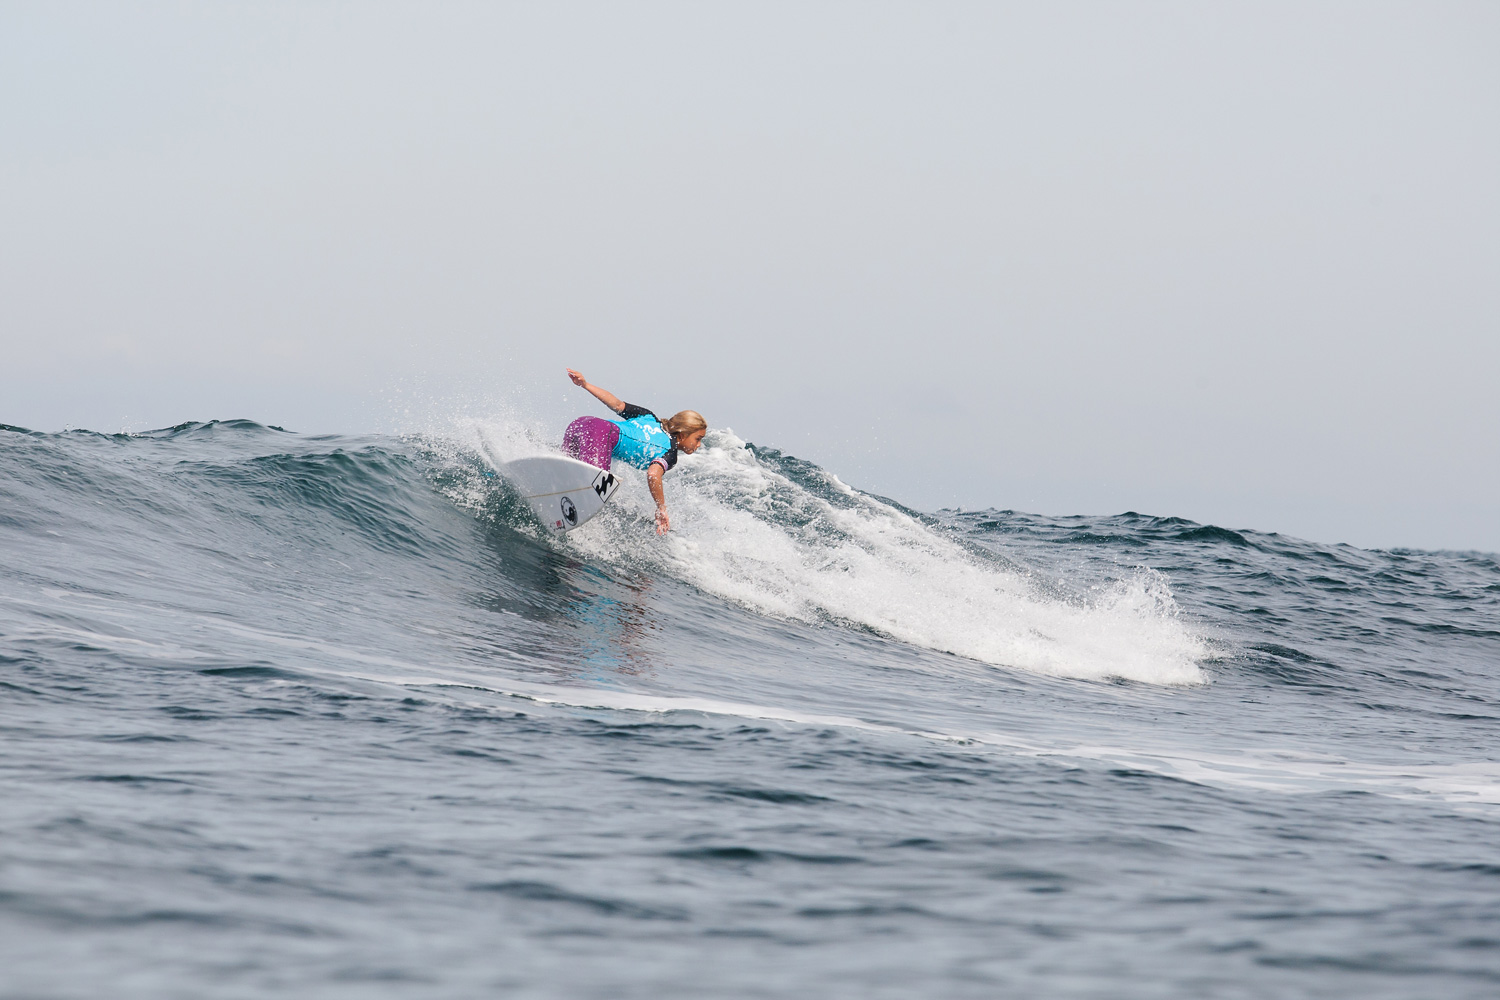 Alessa Quizon placed third in her Rip Curl Pro first round heat on April 16, 2014 in Bells Beach, Australia.